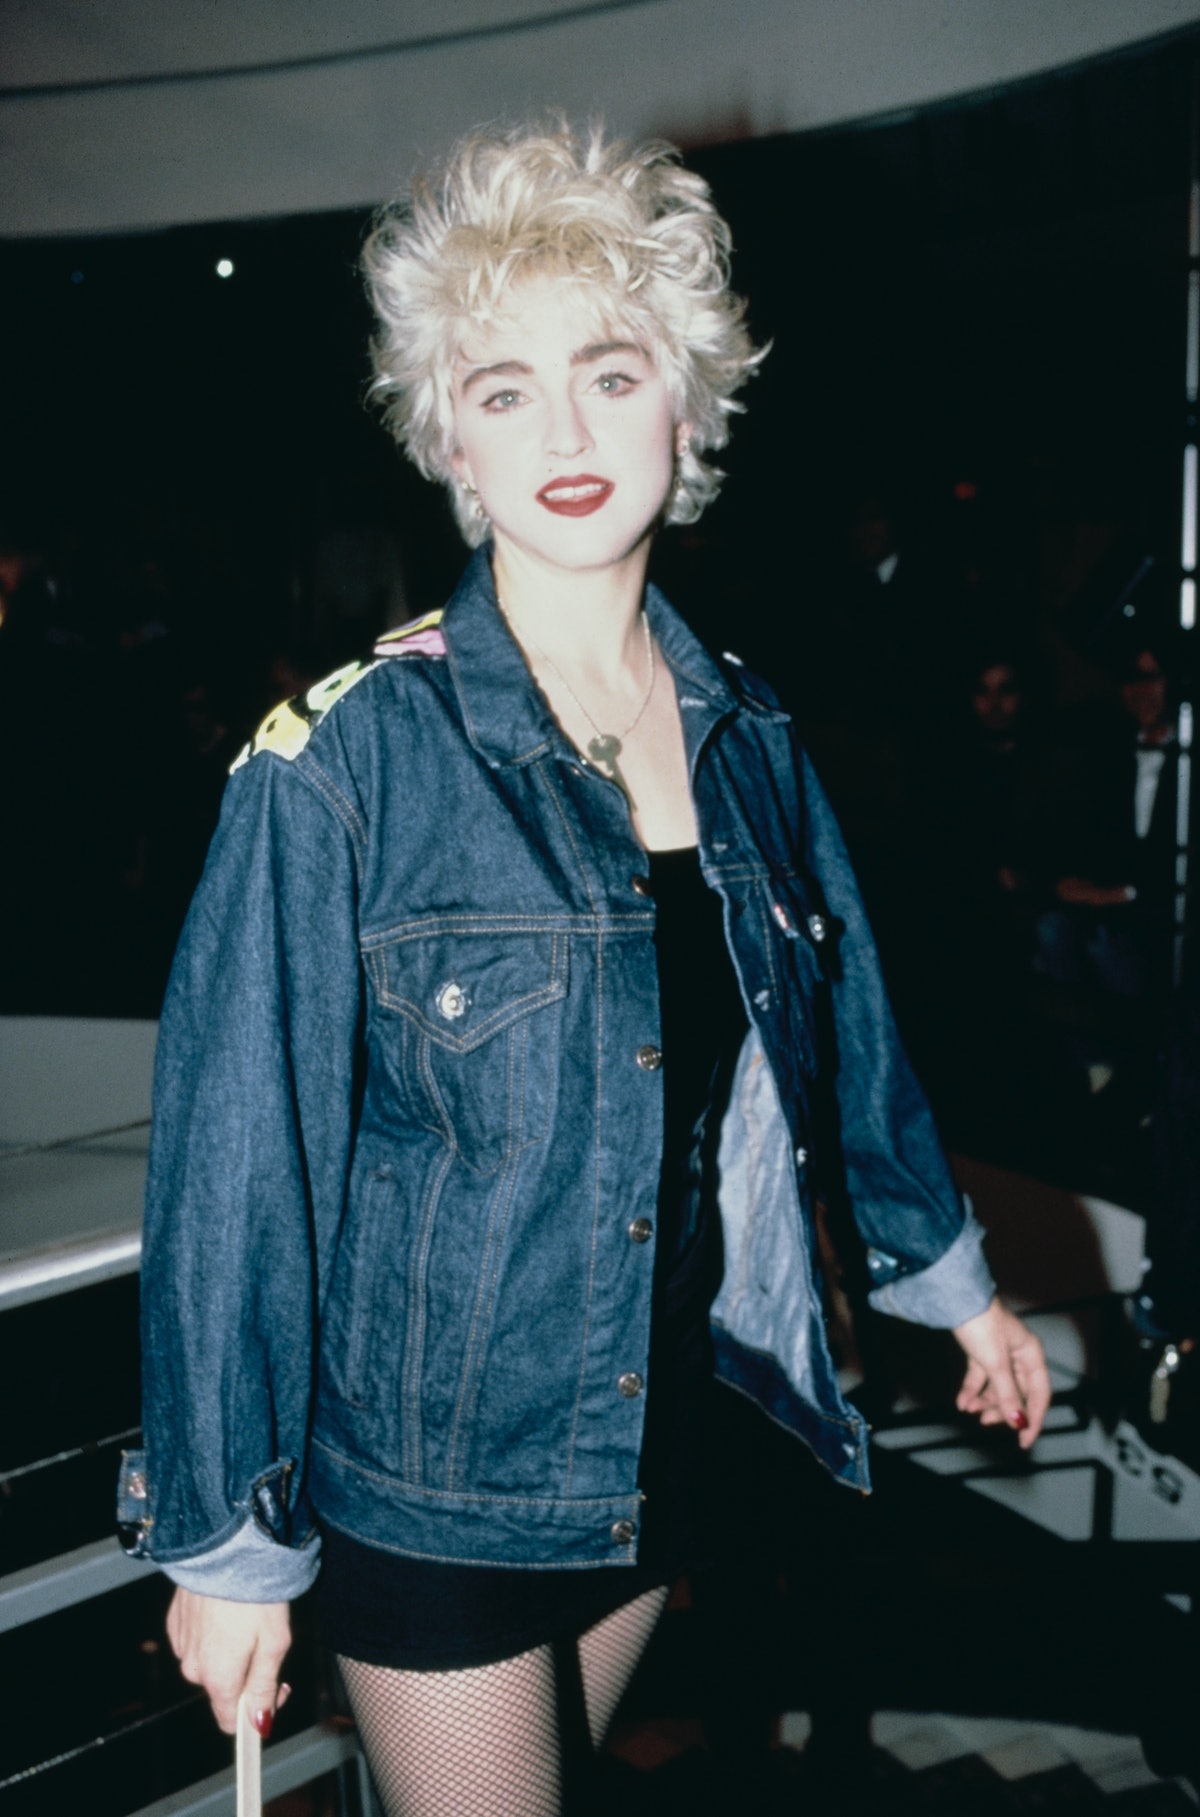 American singer and actress Madonna takes part in a celebrity fashion show at Barneys clothing store...